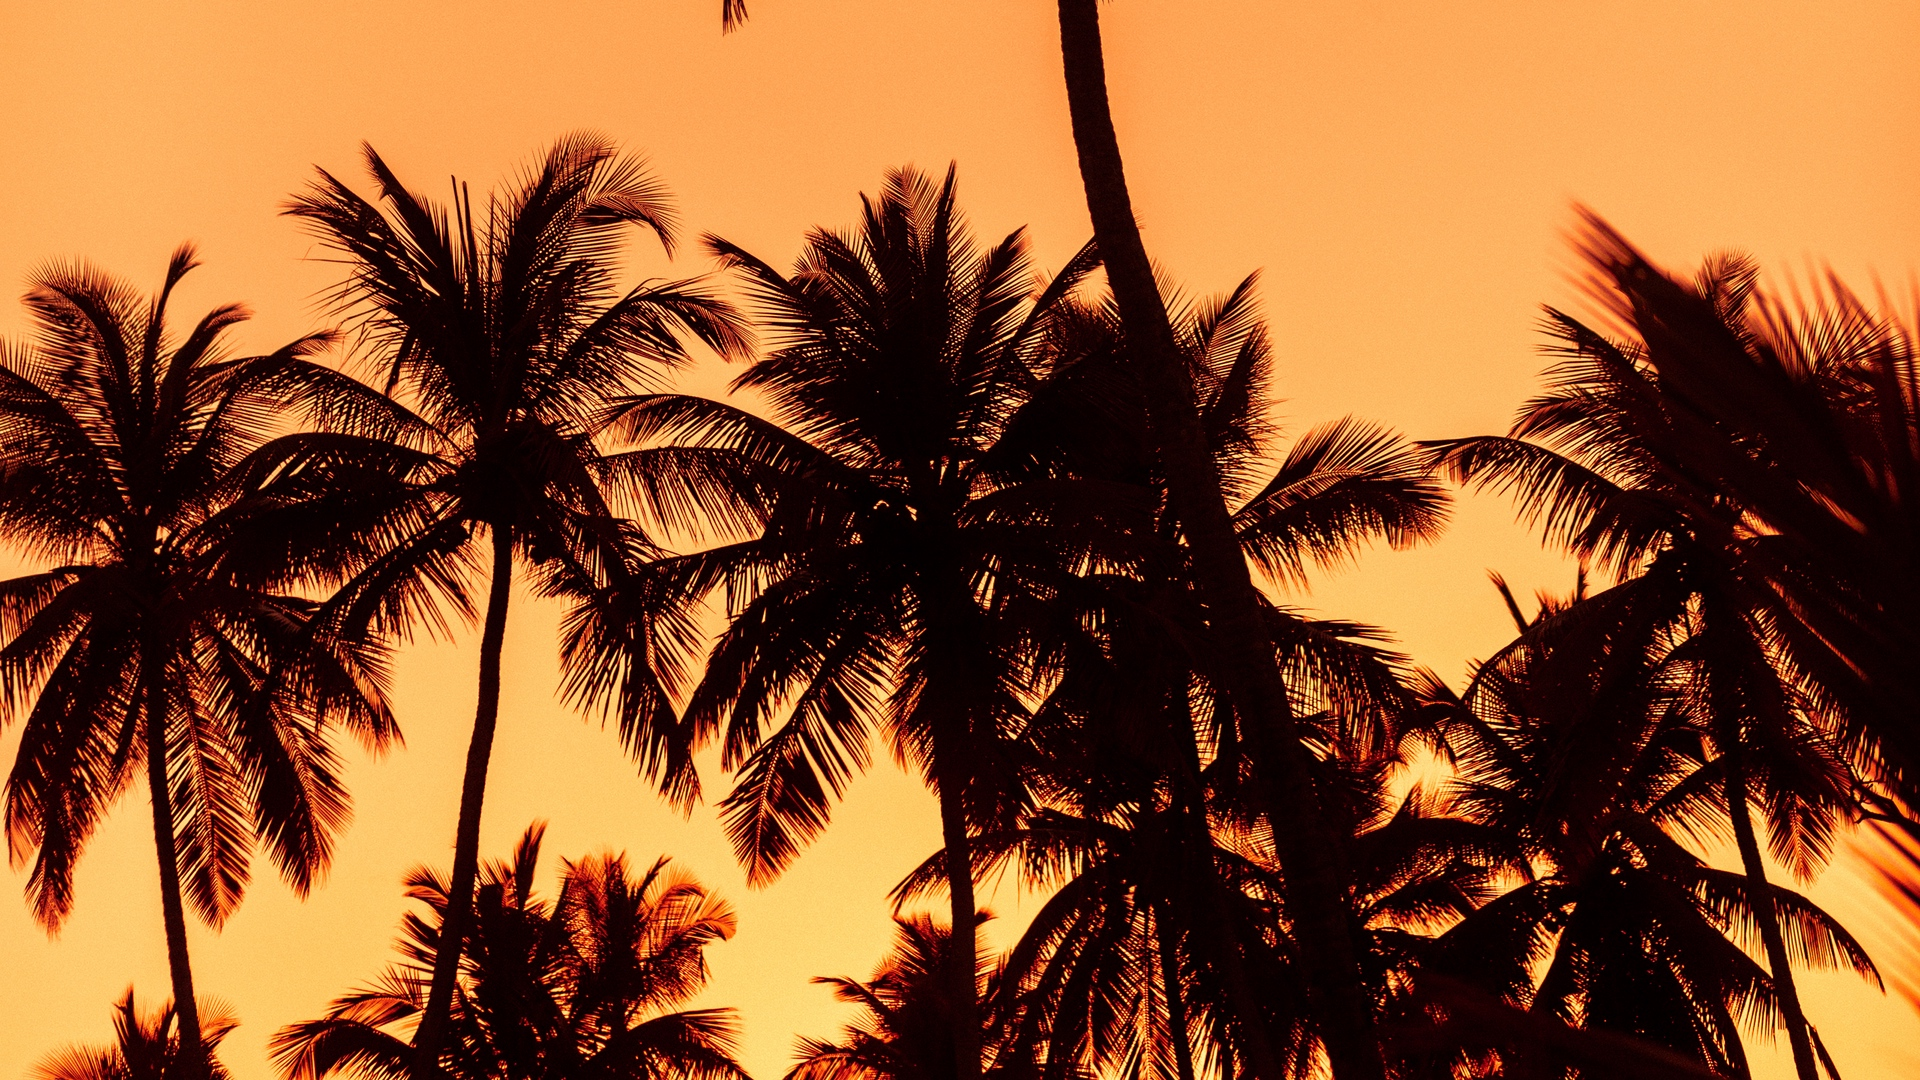 palms sunset trees